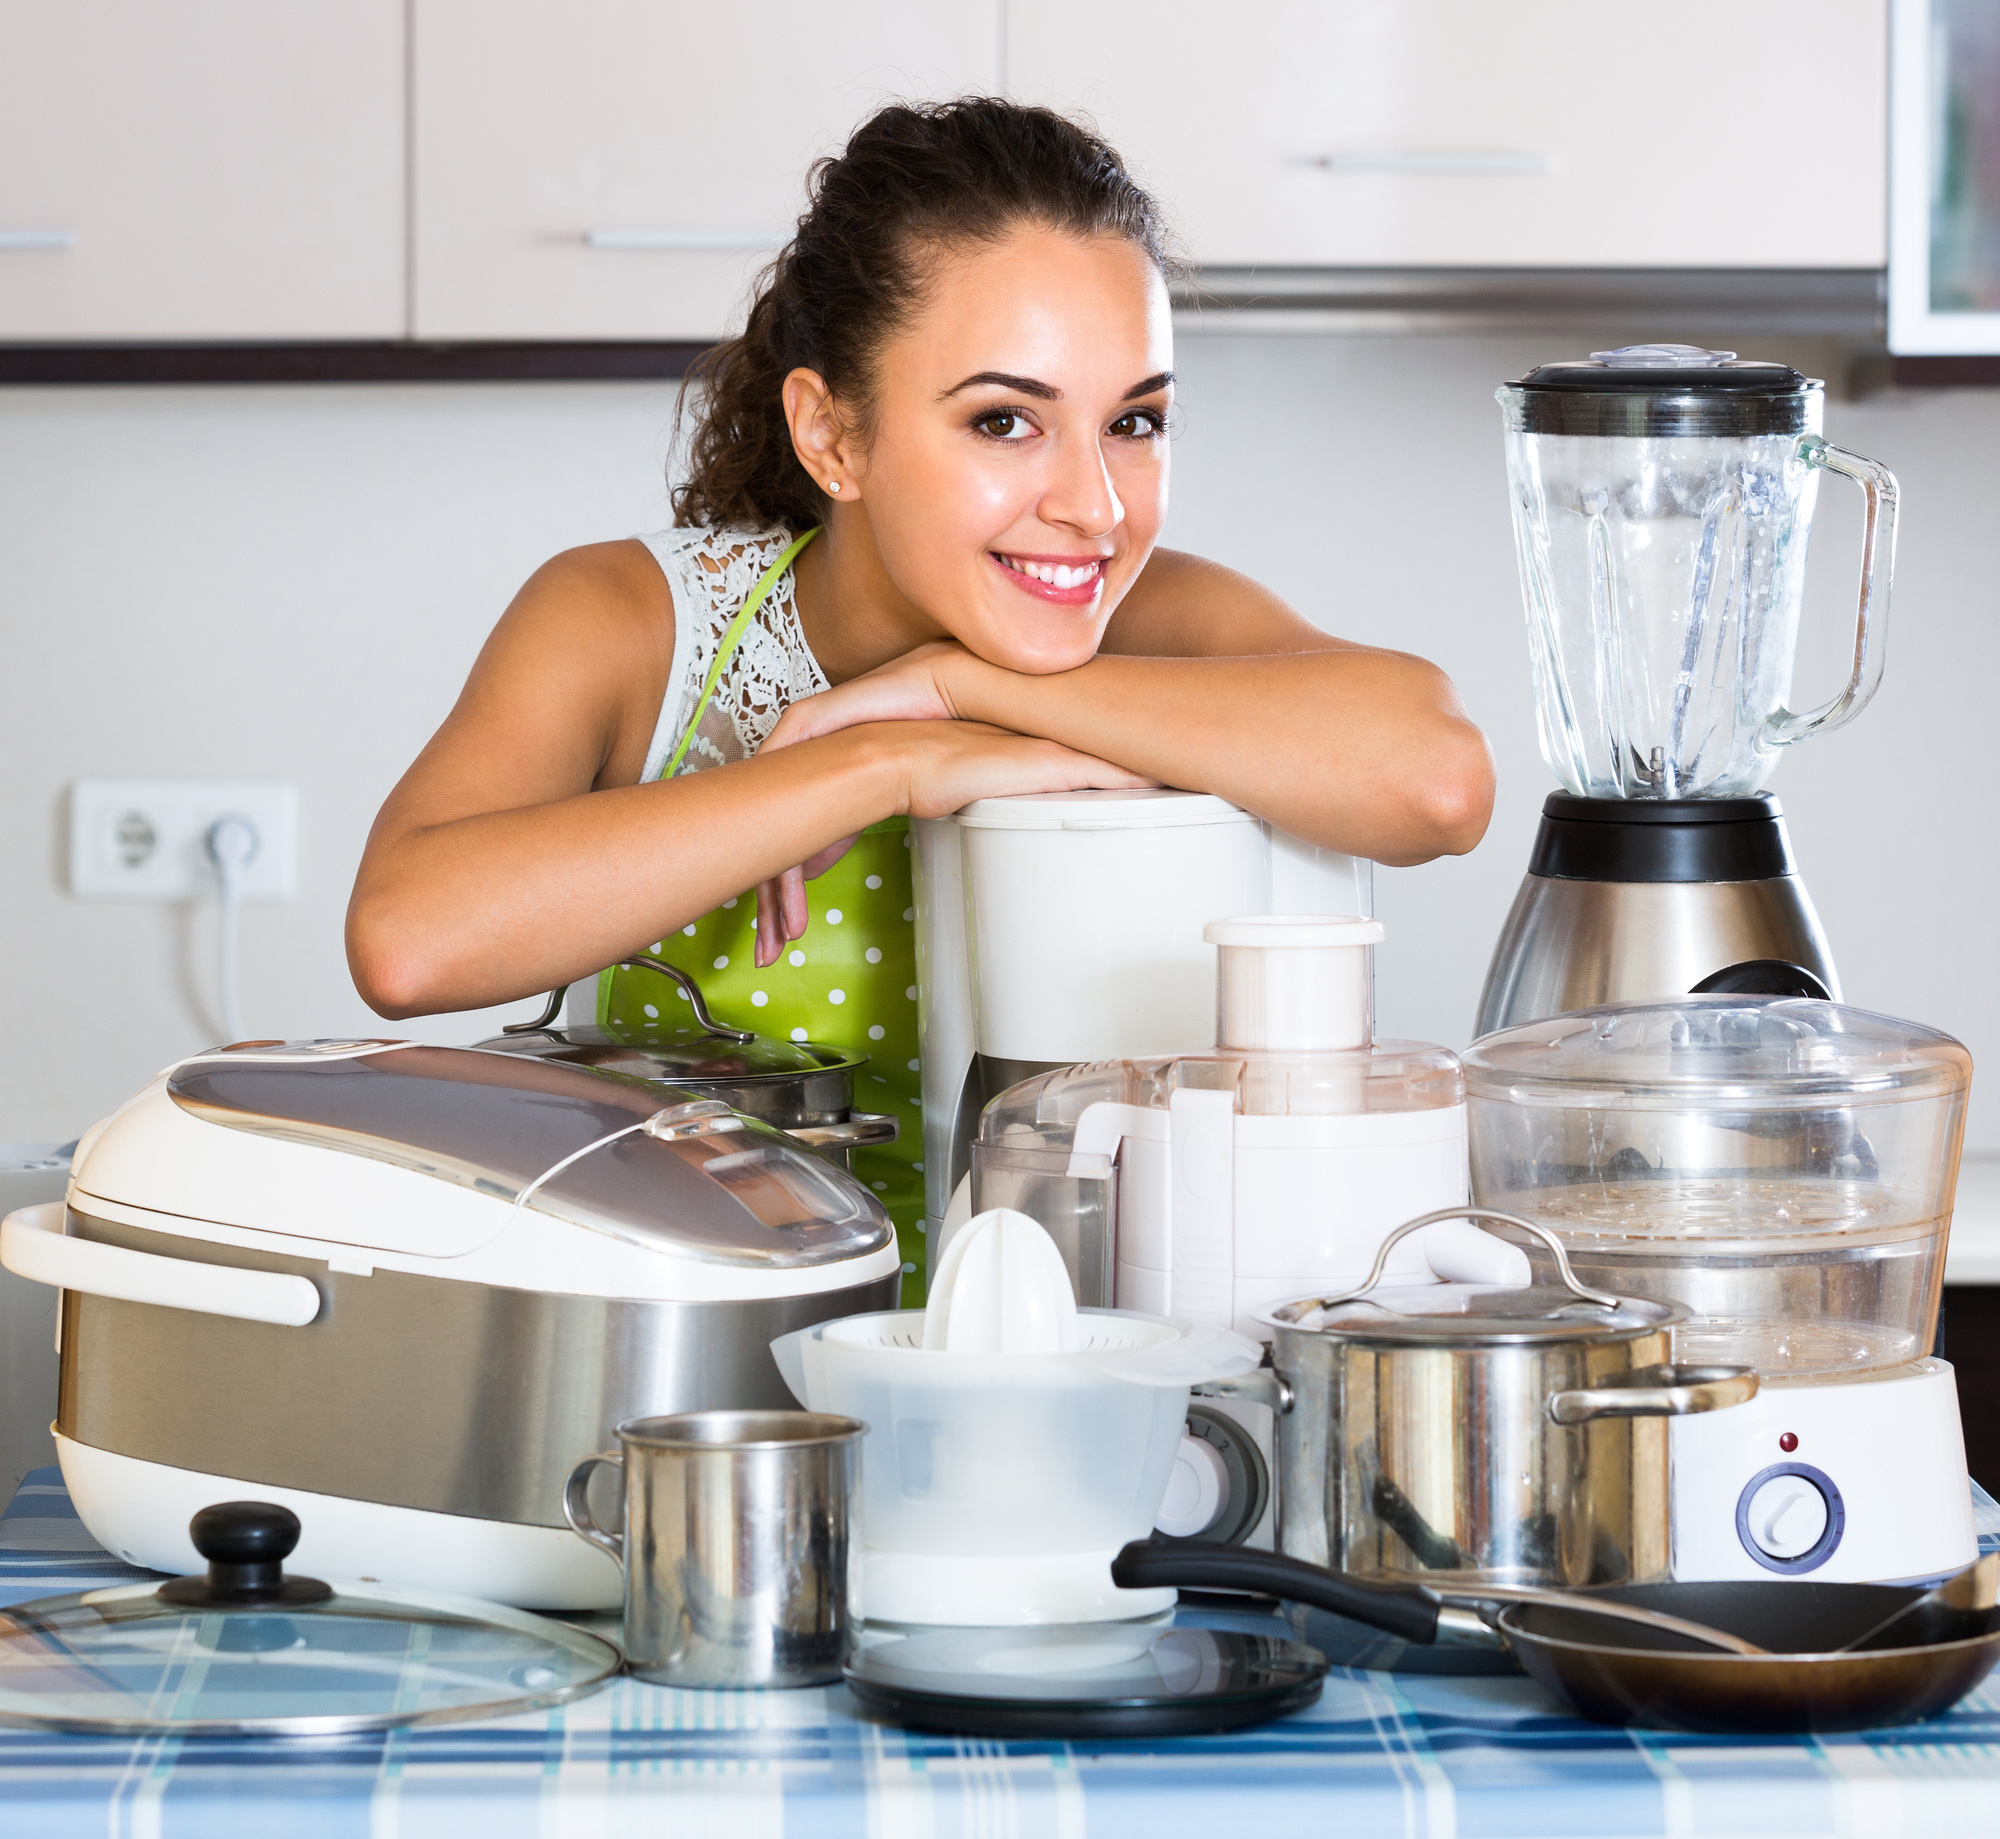 5 Dream Kitchen Must Haves: The Top 5 Must Have Kitchen Appliances For Your Home